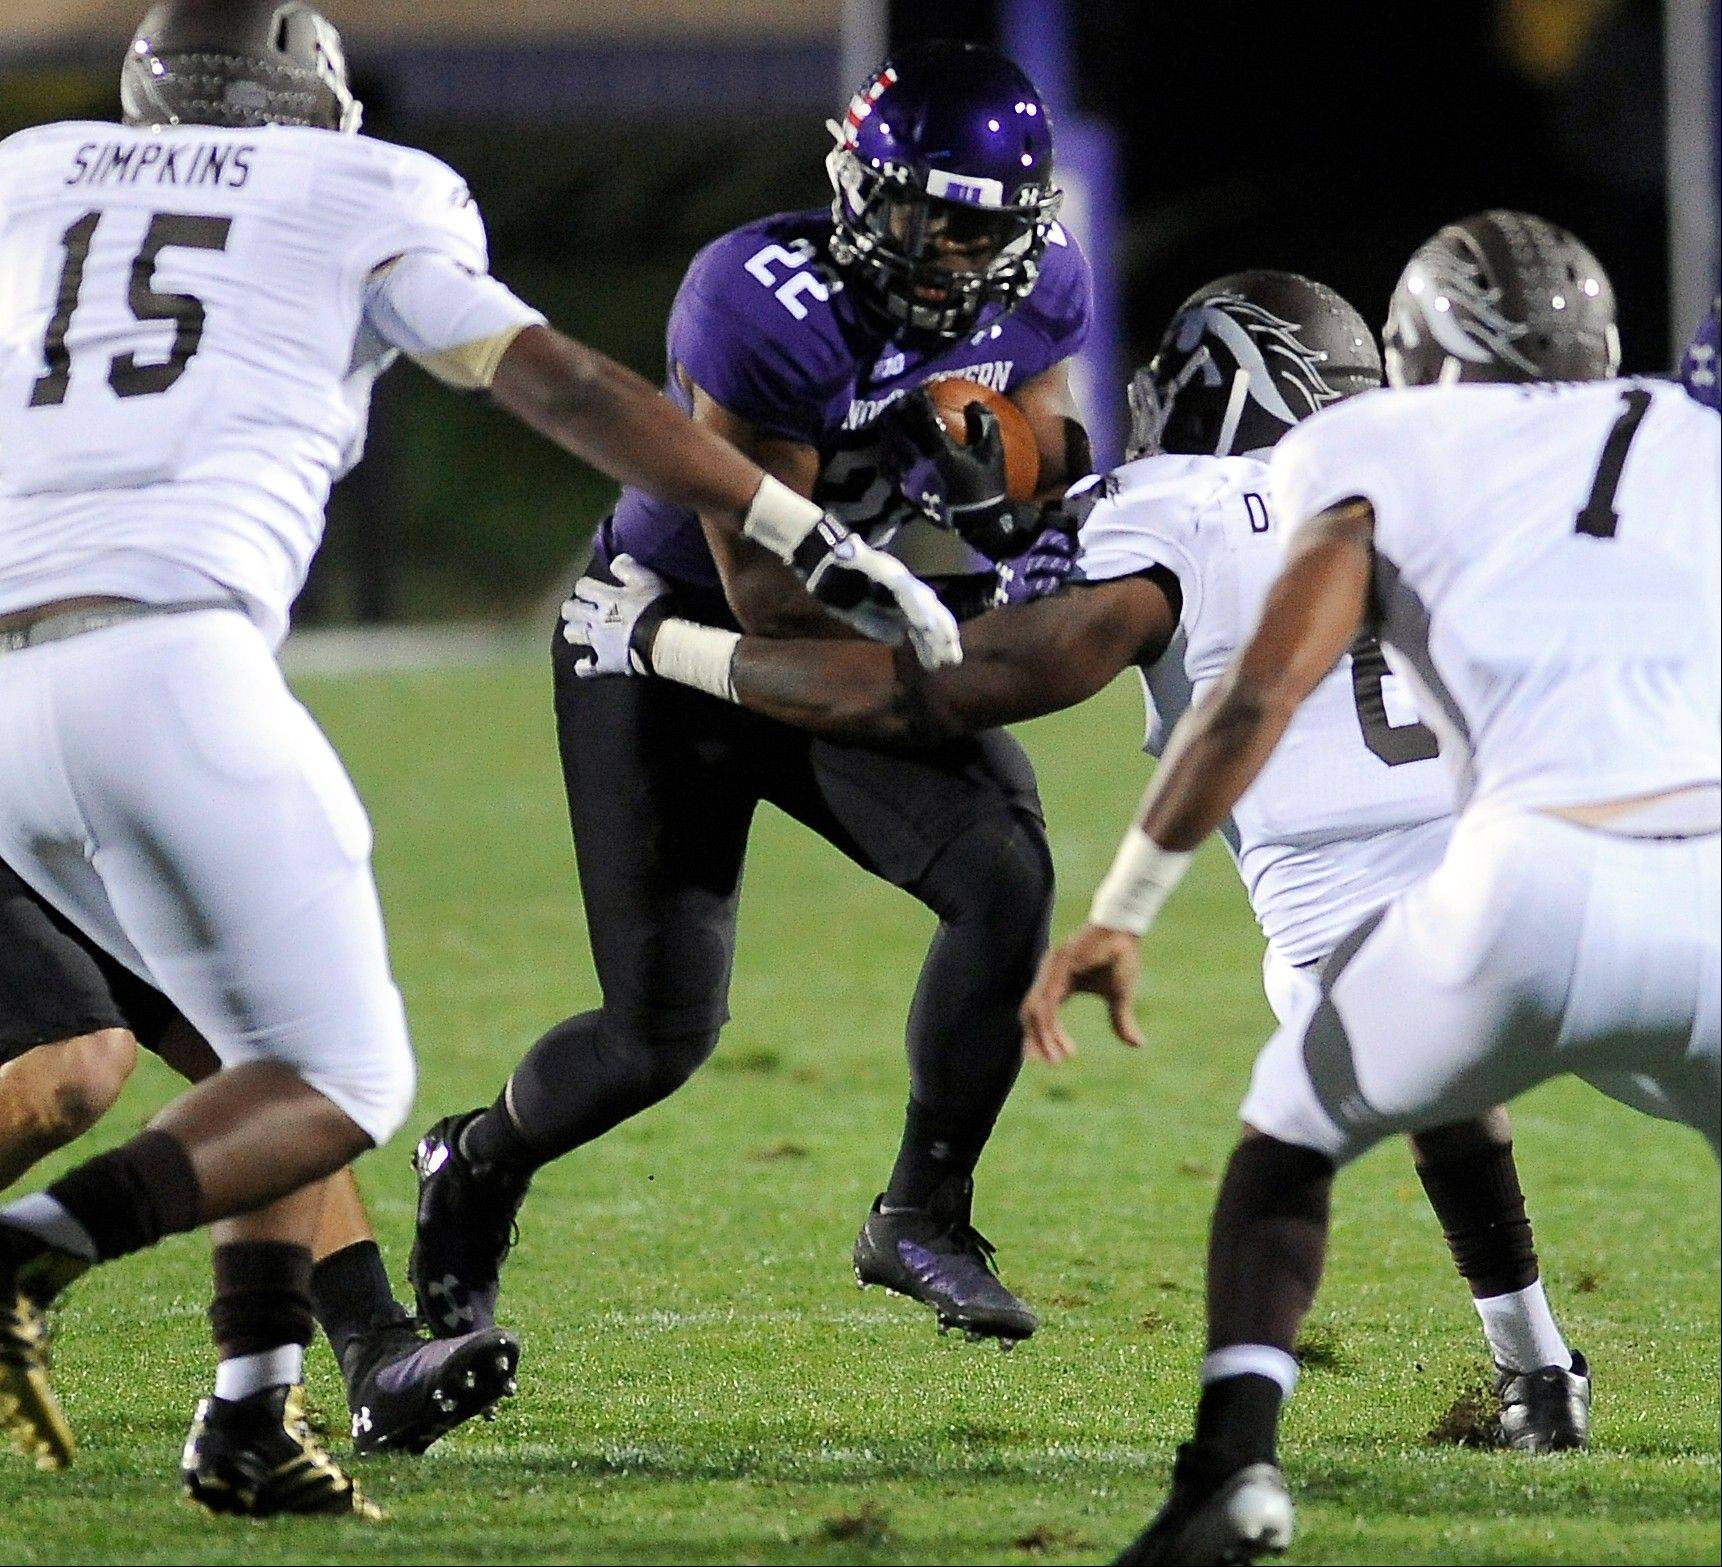 Northwestern's Treyvon Green runs against Western Michigan during last week's win in Evanston. He amassed a personal-best 158 yards and two TDs.